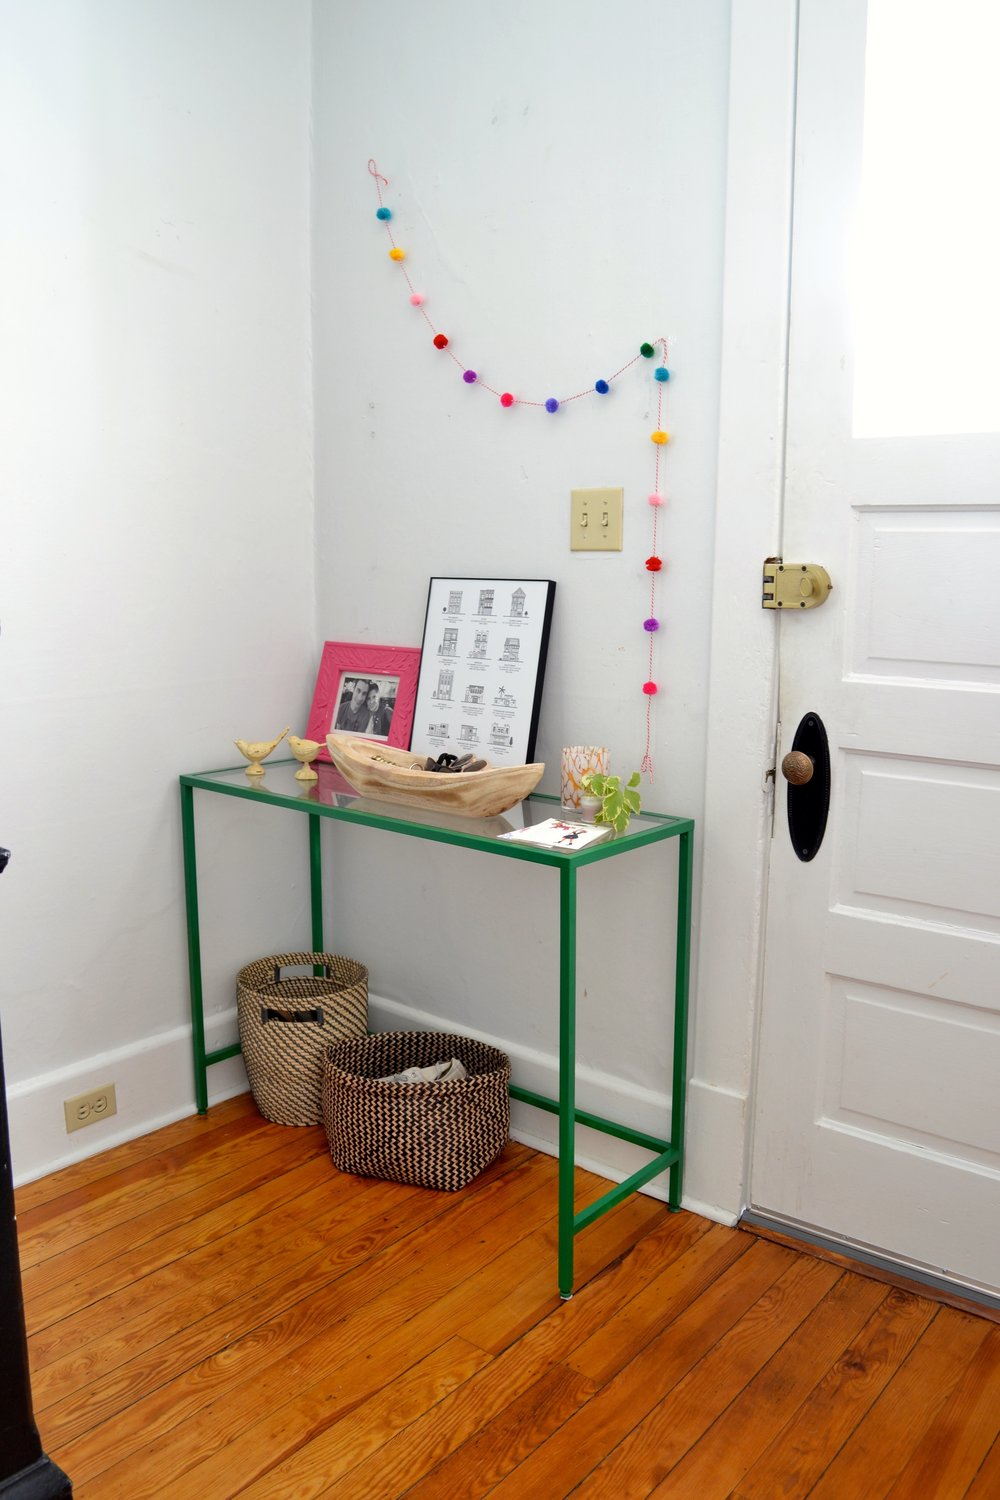 Delicieux A Small Foyer Table: Making Life Easier